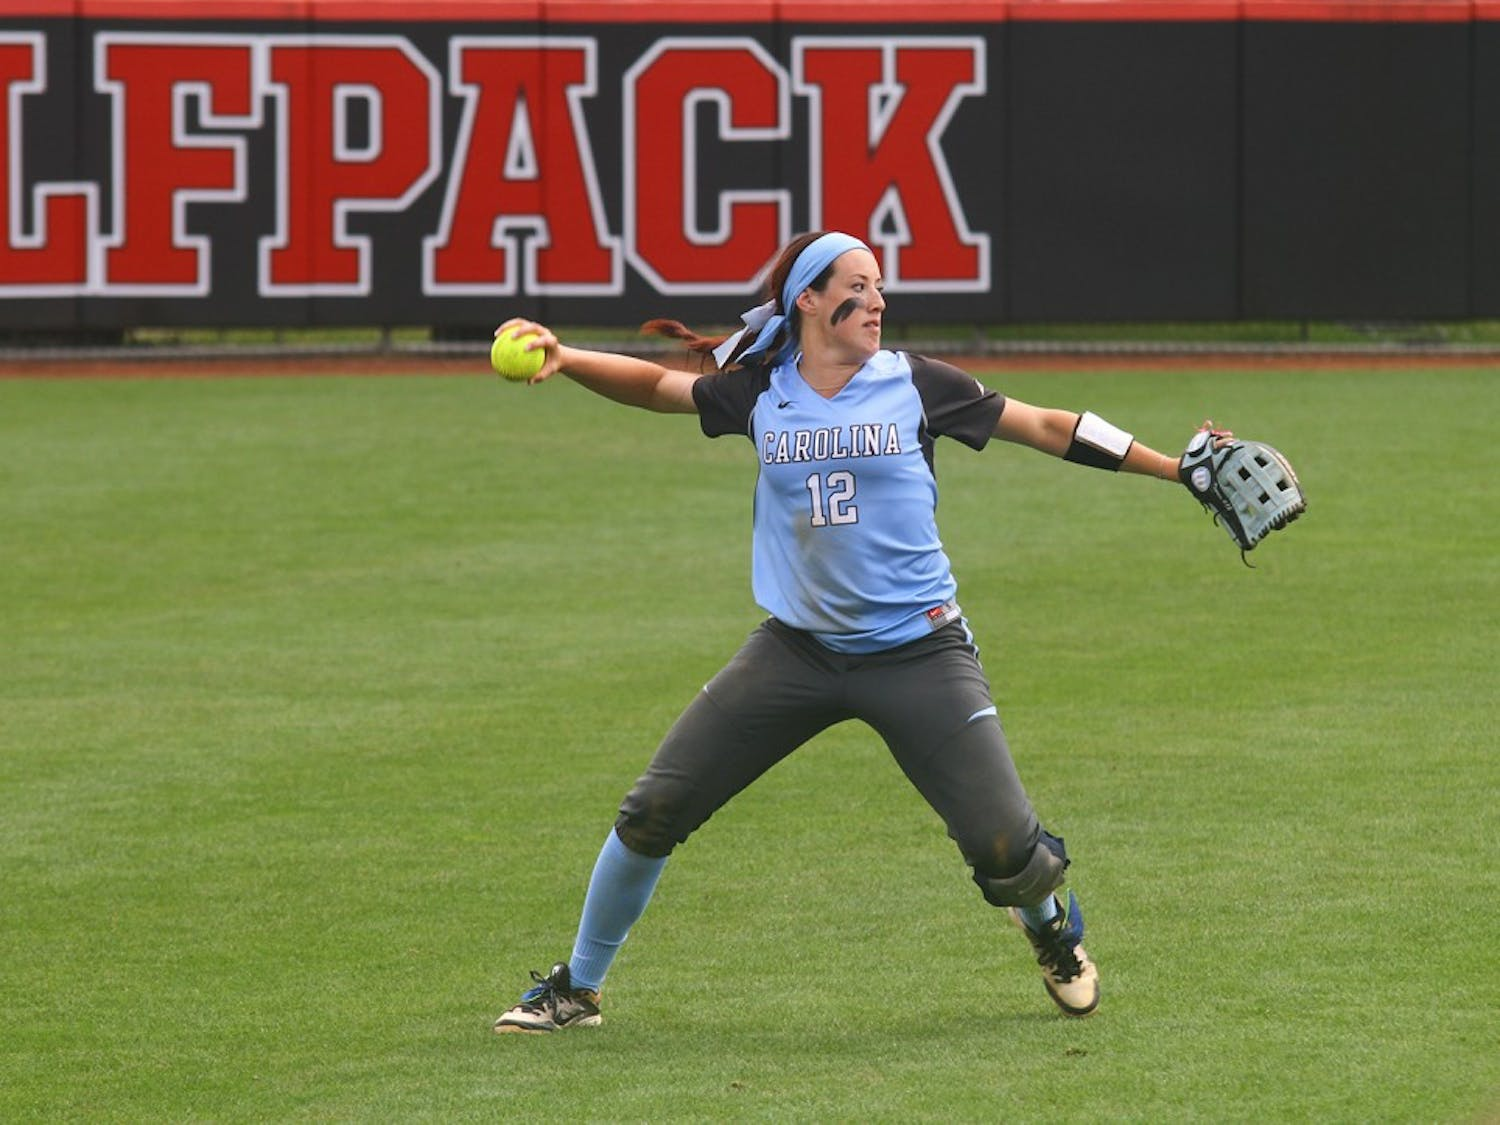 UNC softball defeated Boston College 6-0 Thursday and lost to Florida State 1-7 Friday in the ACC Tournament.